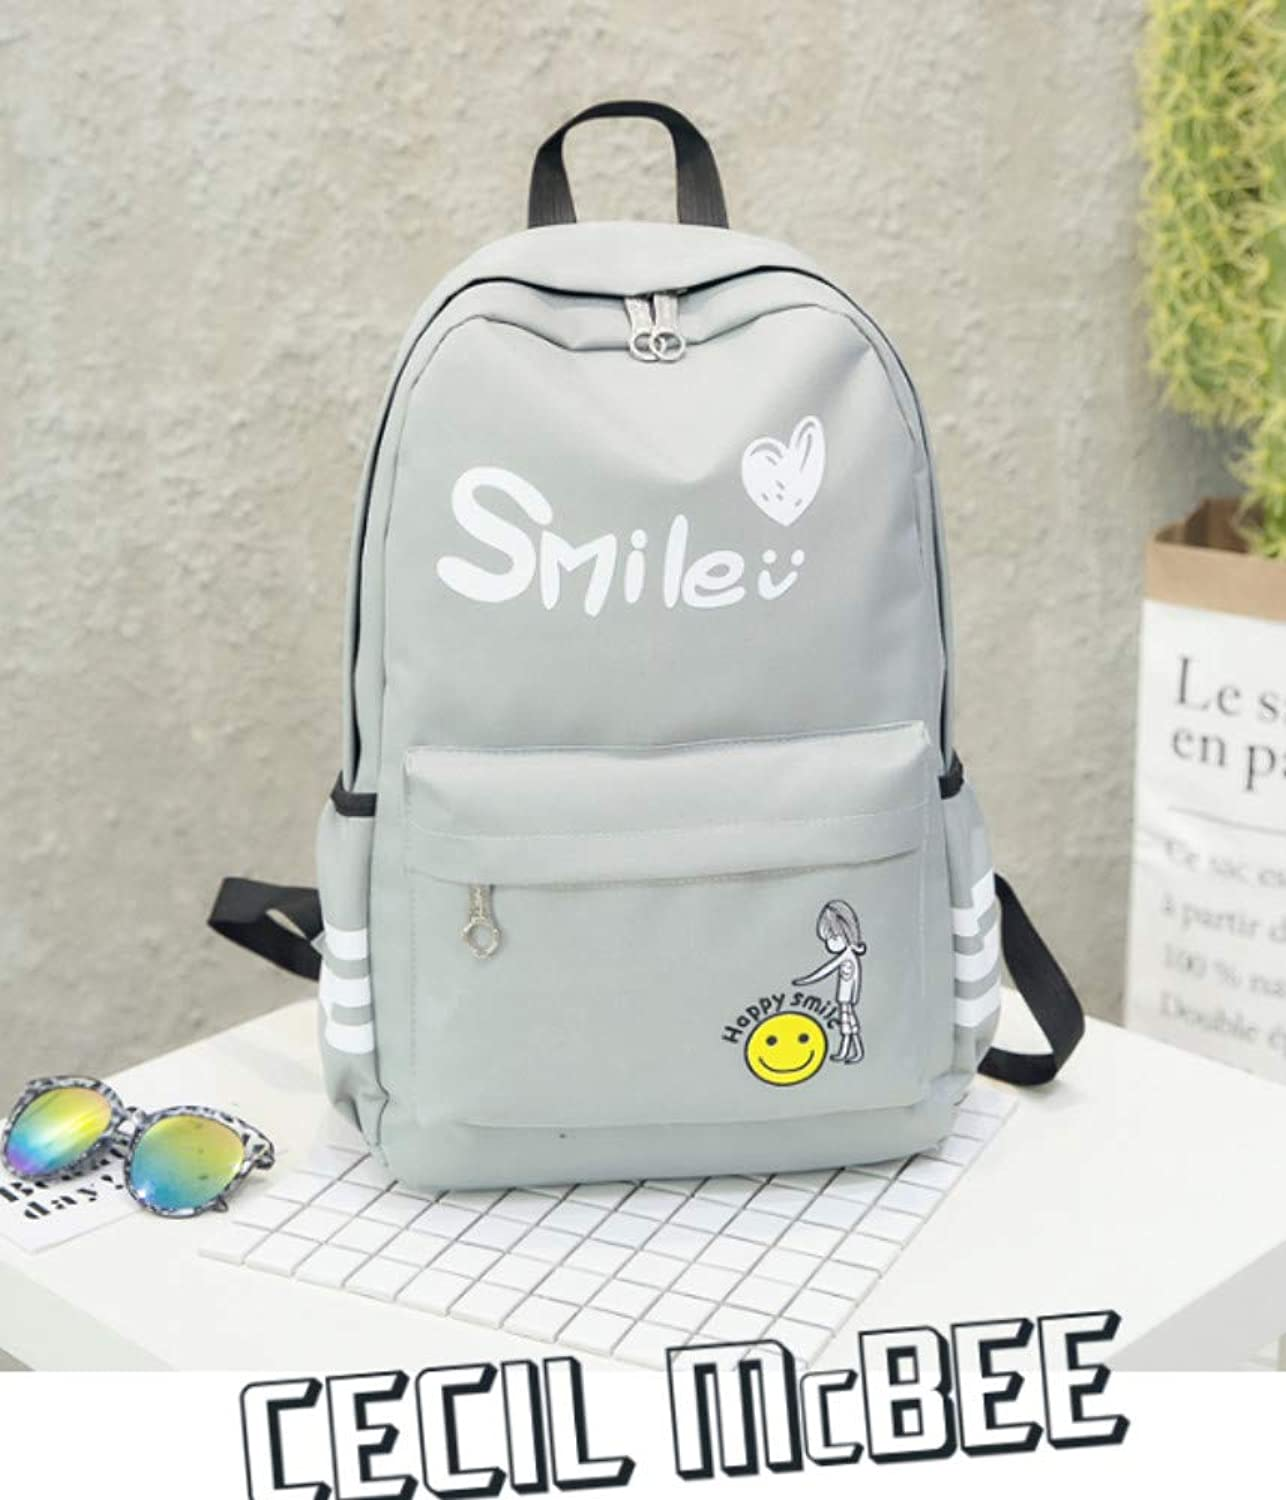 Backpack Men's Shoulder Bag Fashion Trend Hip hop Street Europe and America Wild Personality Computer Bag